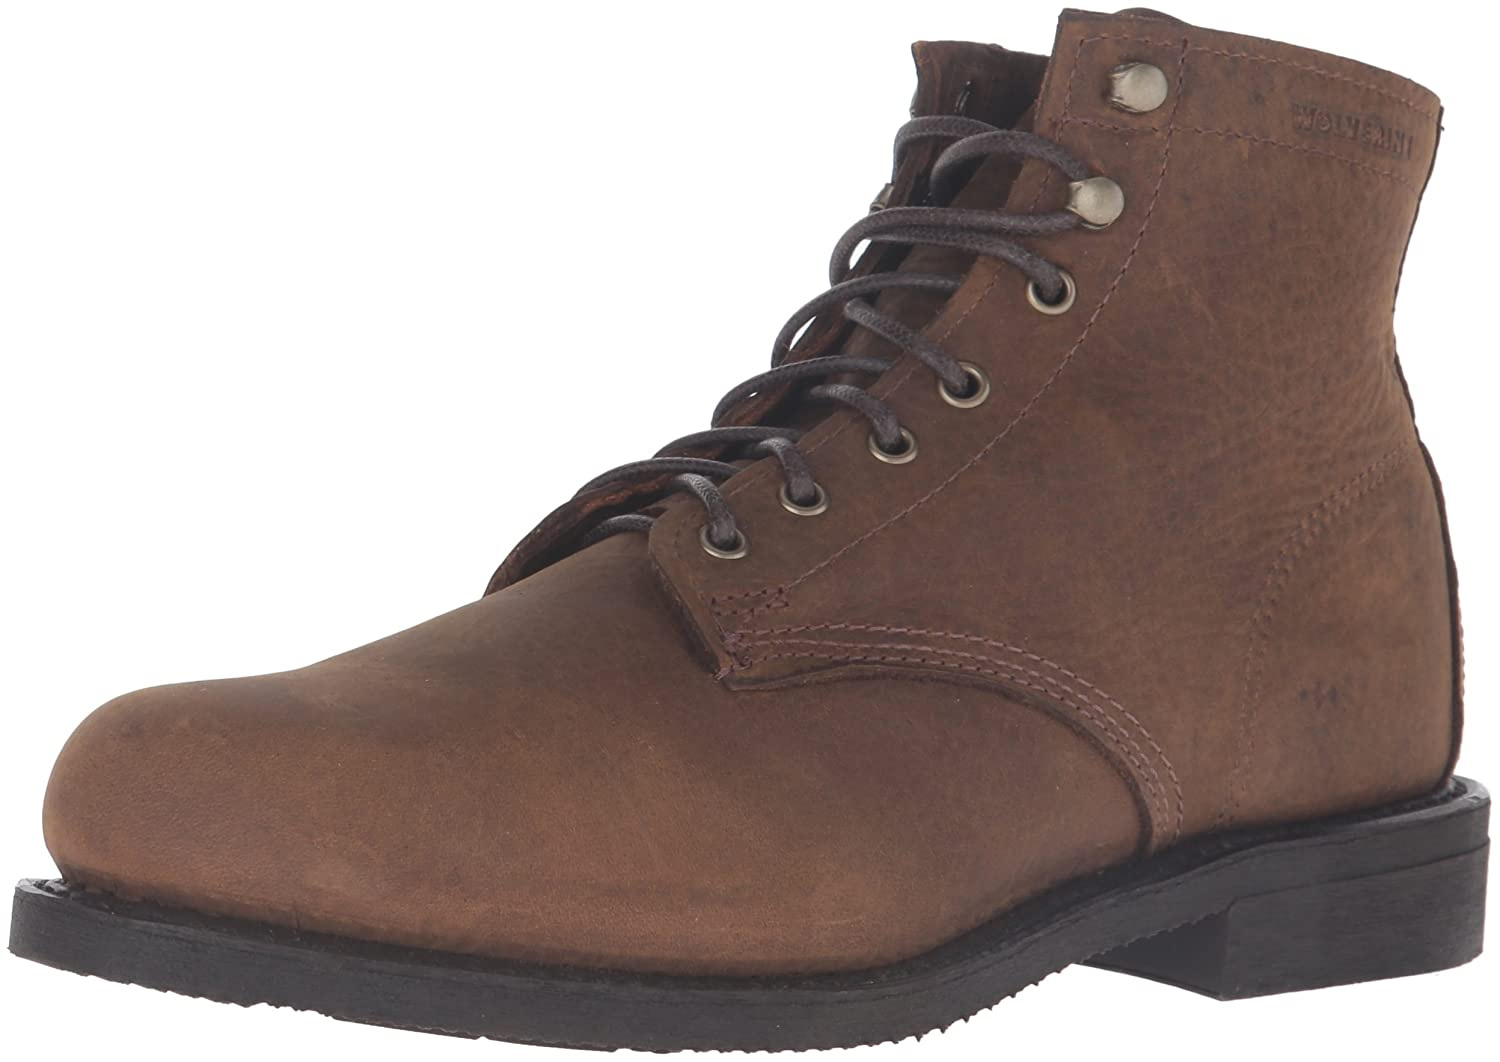 1883 by Wolverine Men's Kilometer Winter Boot